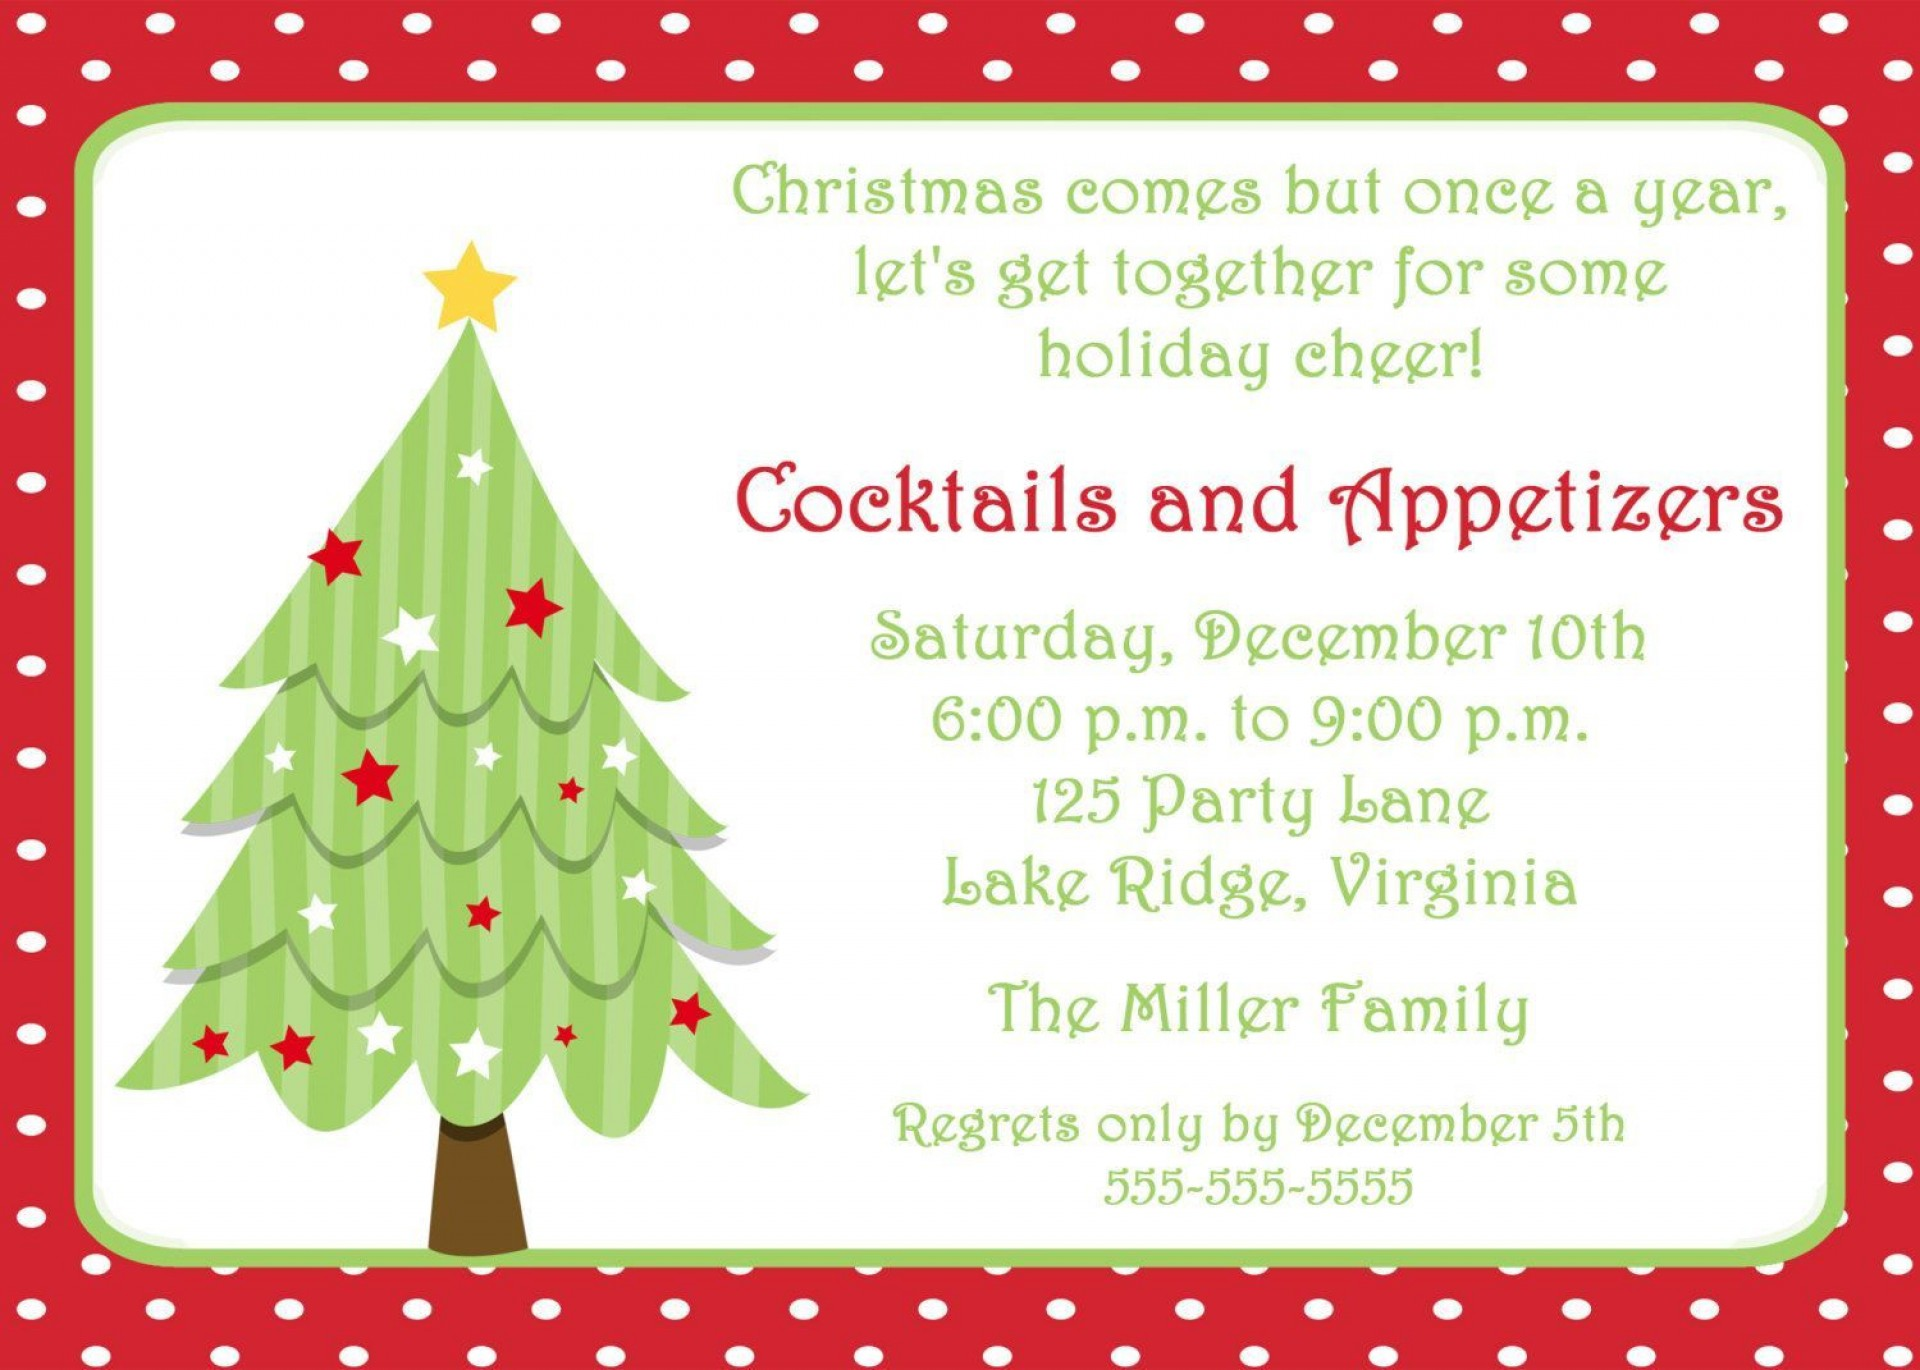 002 Best Christma Party Invite Template Word Image  Holiday Free Invitation Wording Example1920